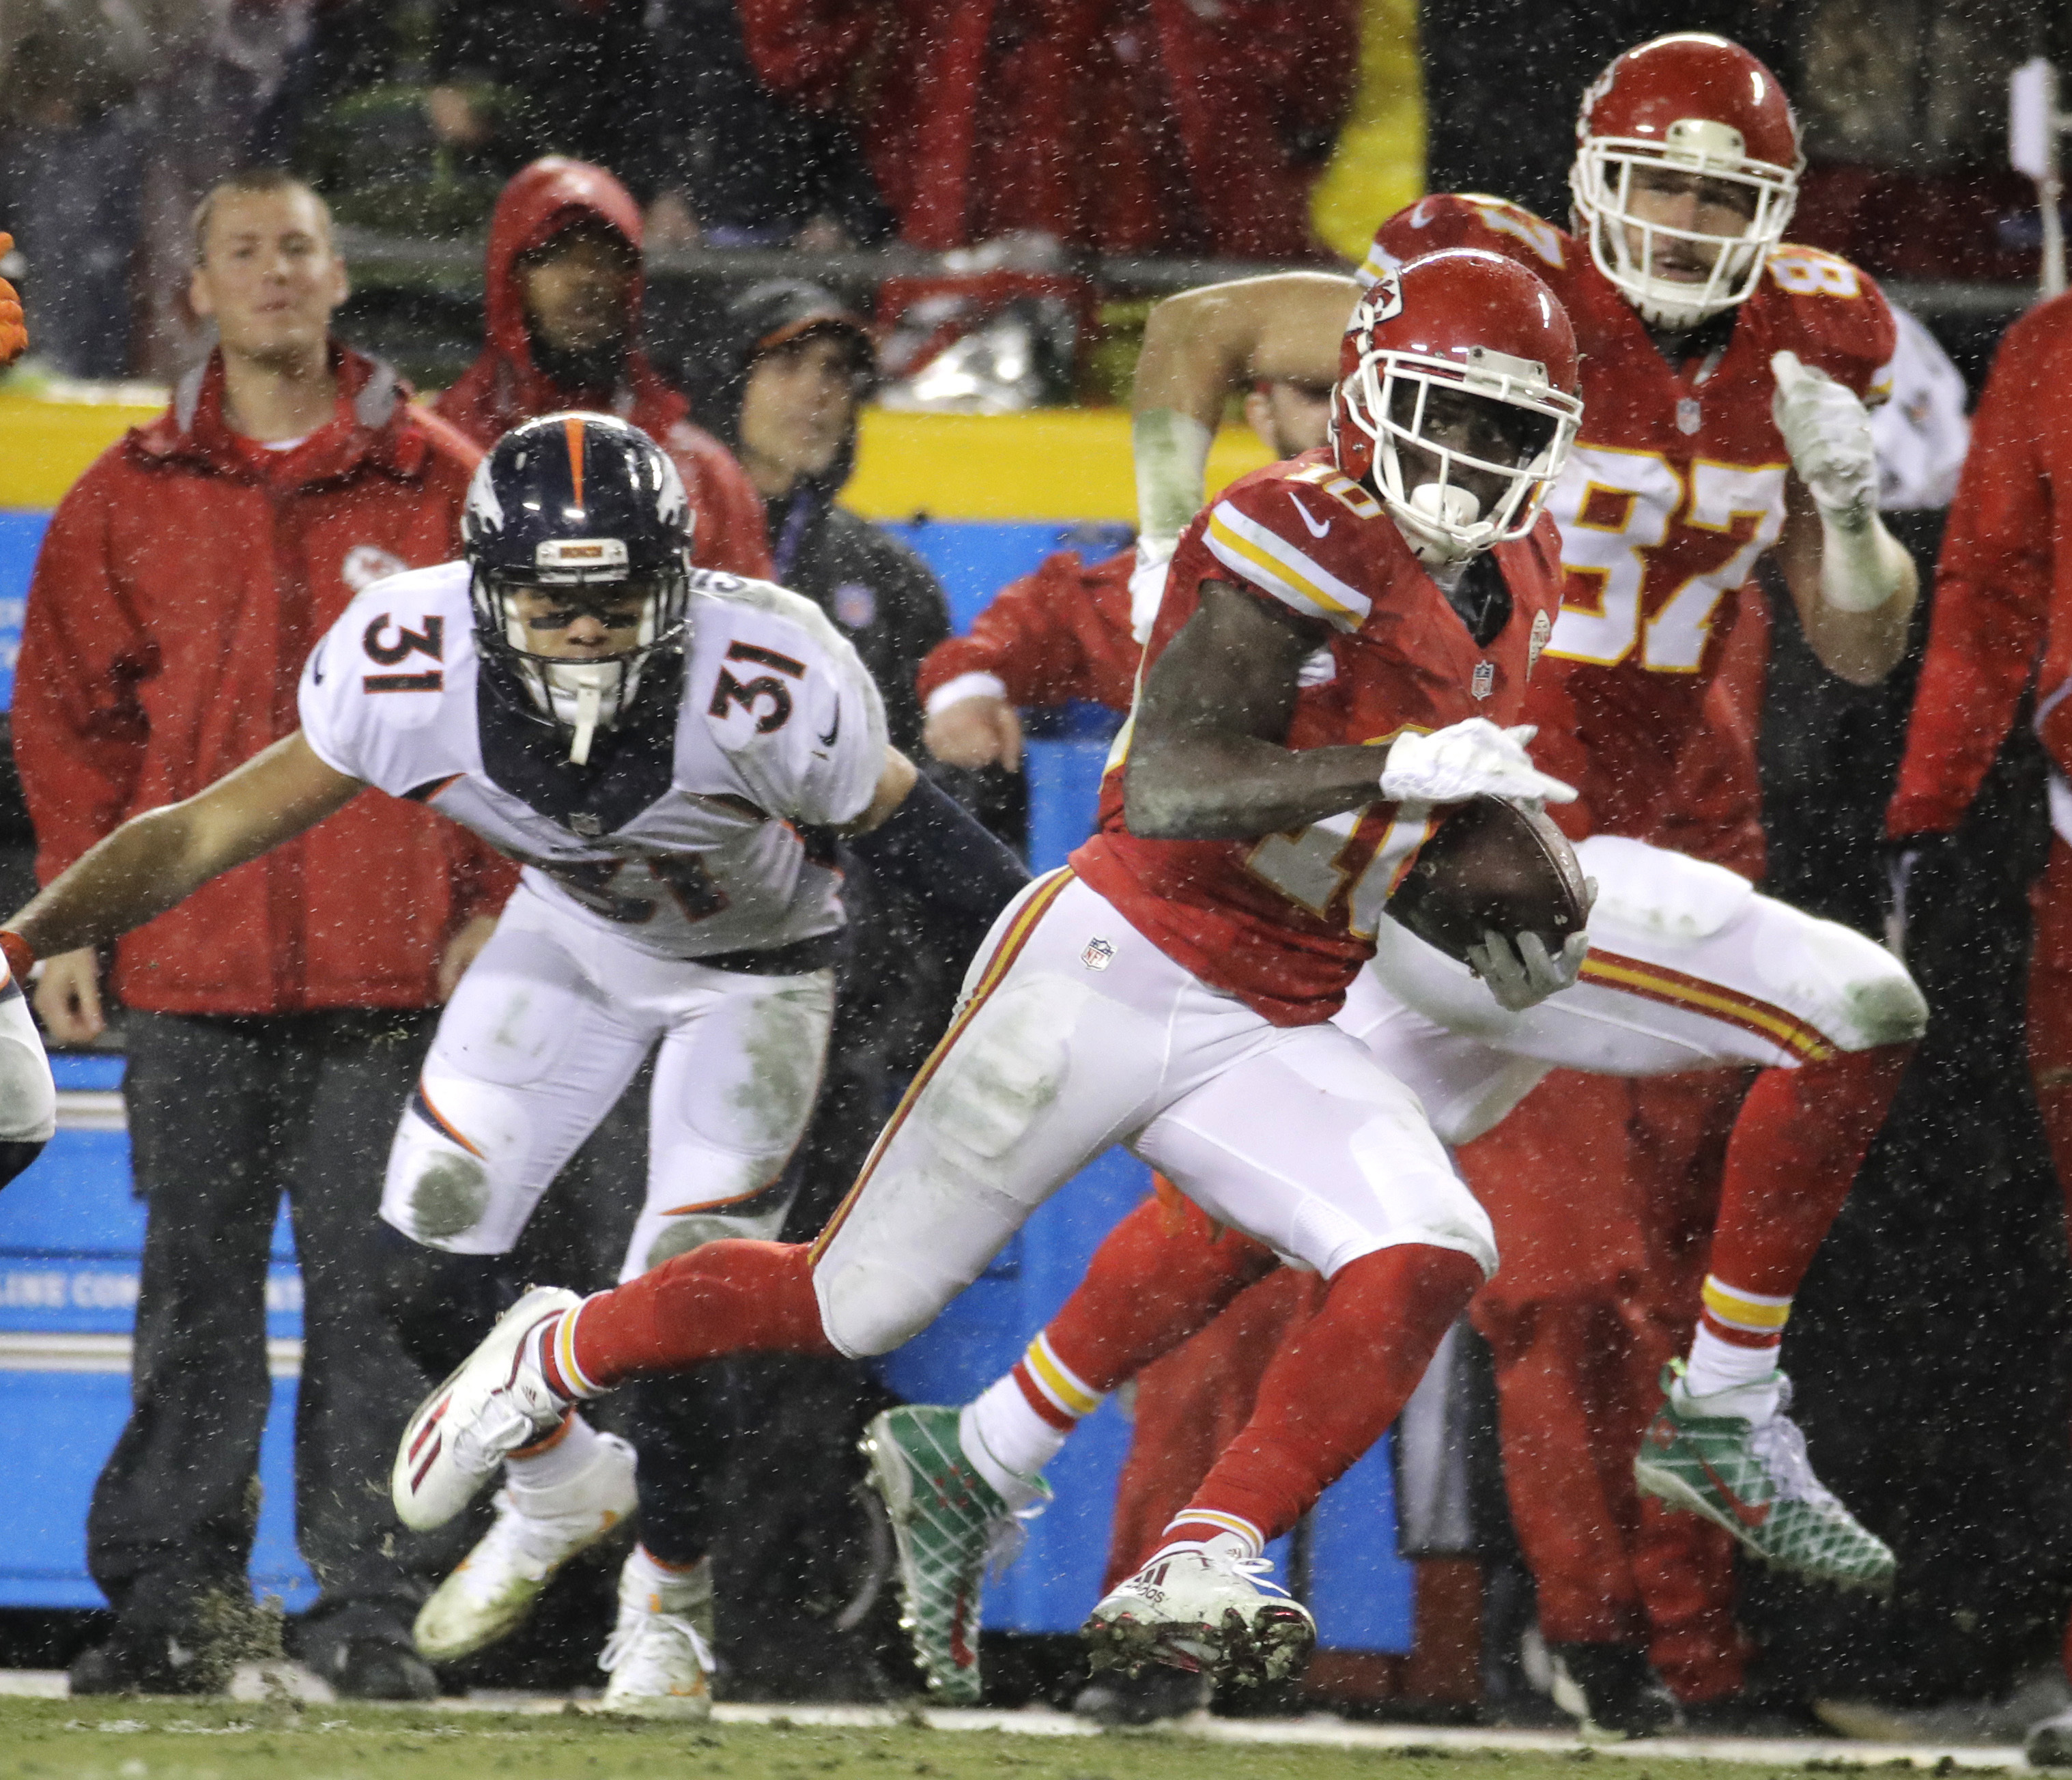 Kansas City Chiefs wide receiver Tyreek Hill (10) runs past Denver Broncos safety Justin Simmons (31) for a 70-yard touchdown, with tight end Travis Kelce (87) running alongside him during the first half of an NFL football game against the Denver Broncos